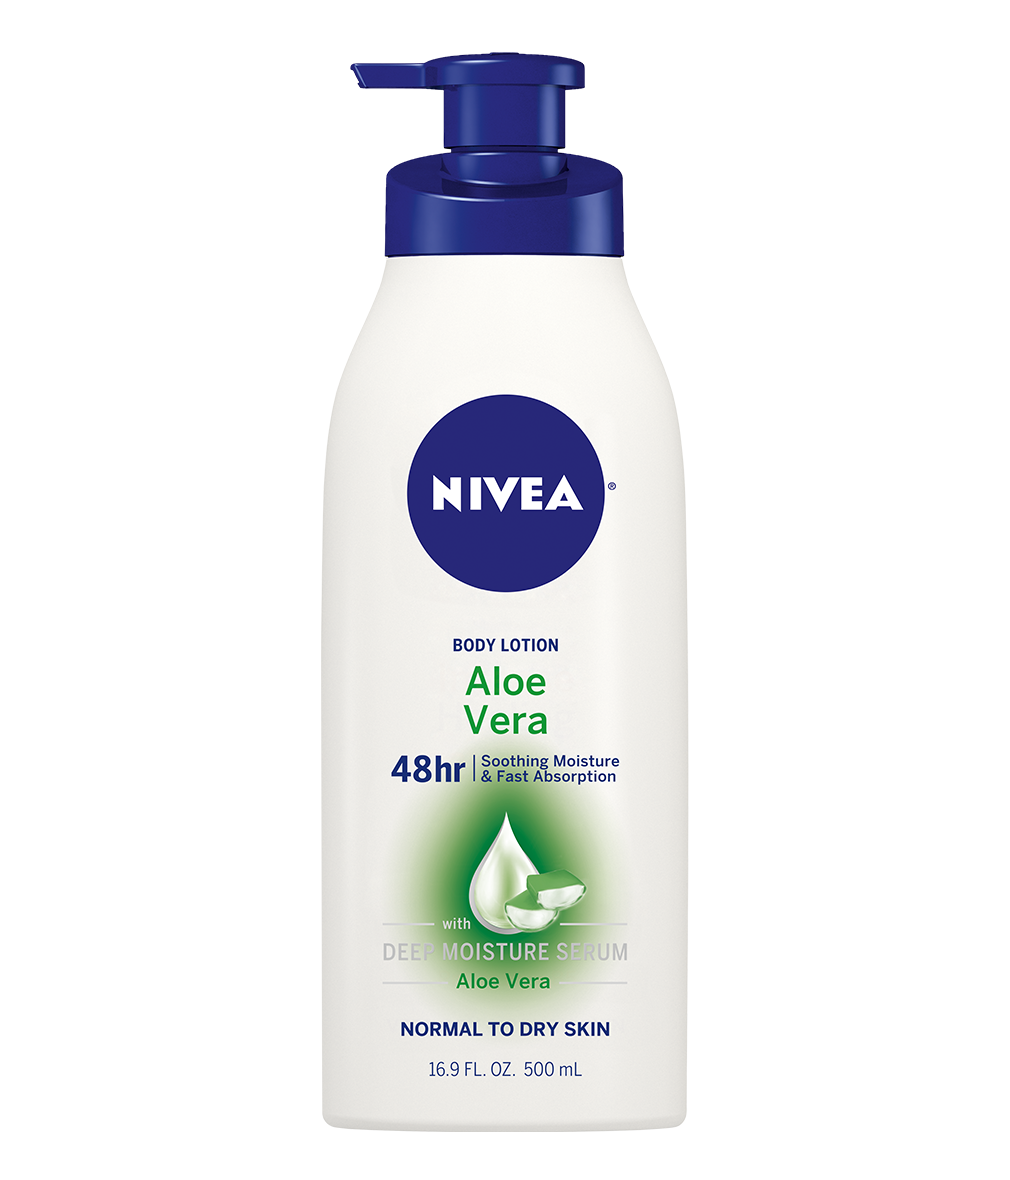 NIVEA® Aloe Vera Body Lotion provides normal to dry skin